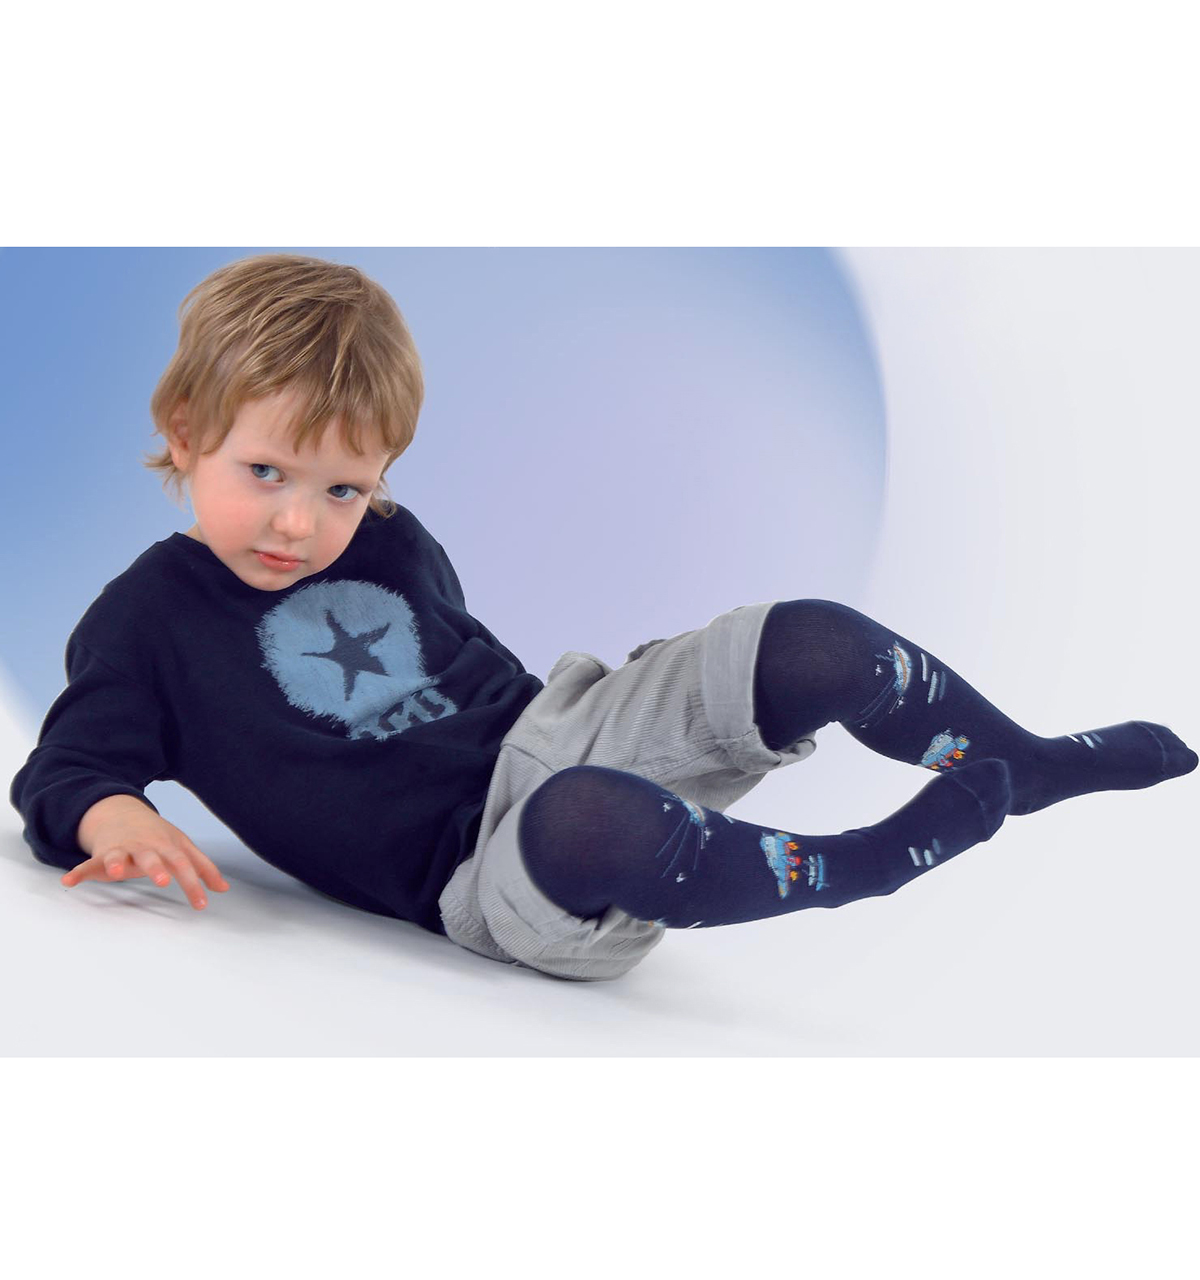 Patterned tights for boys 501-004B